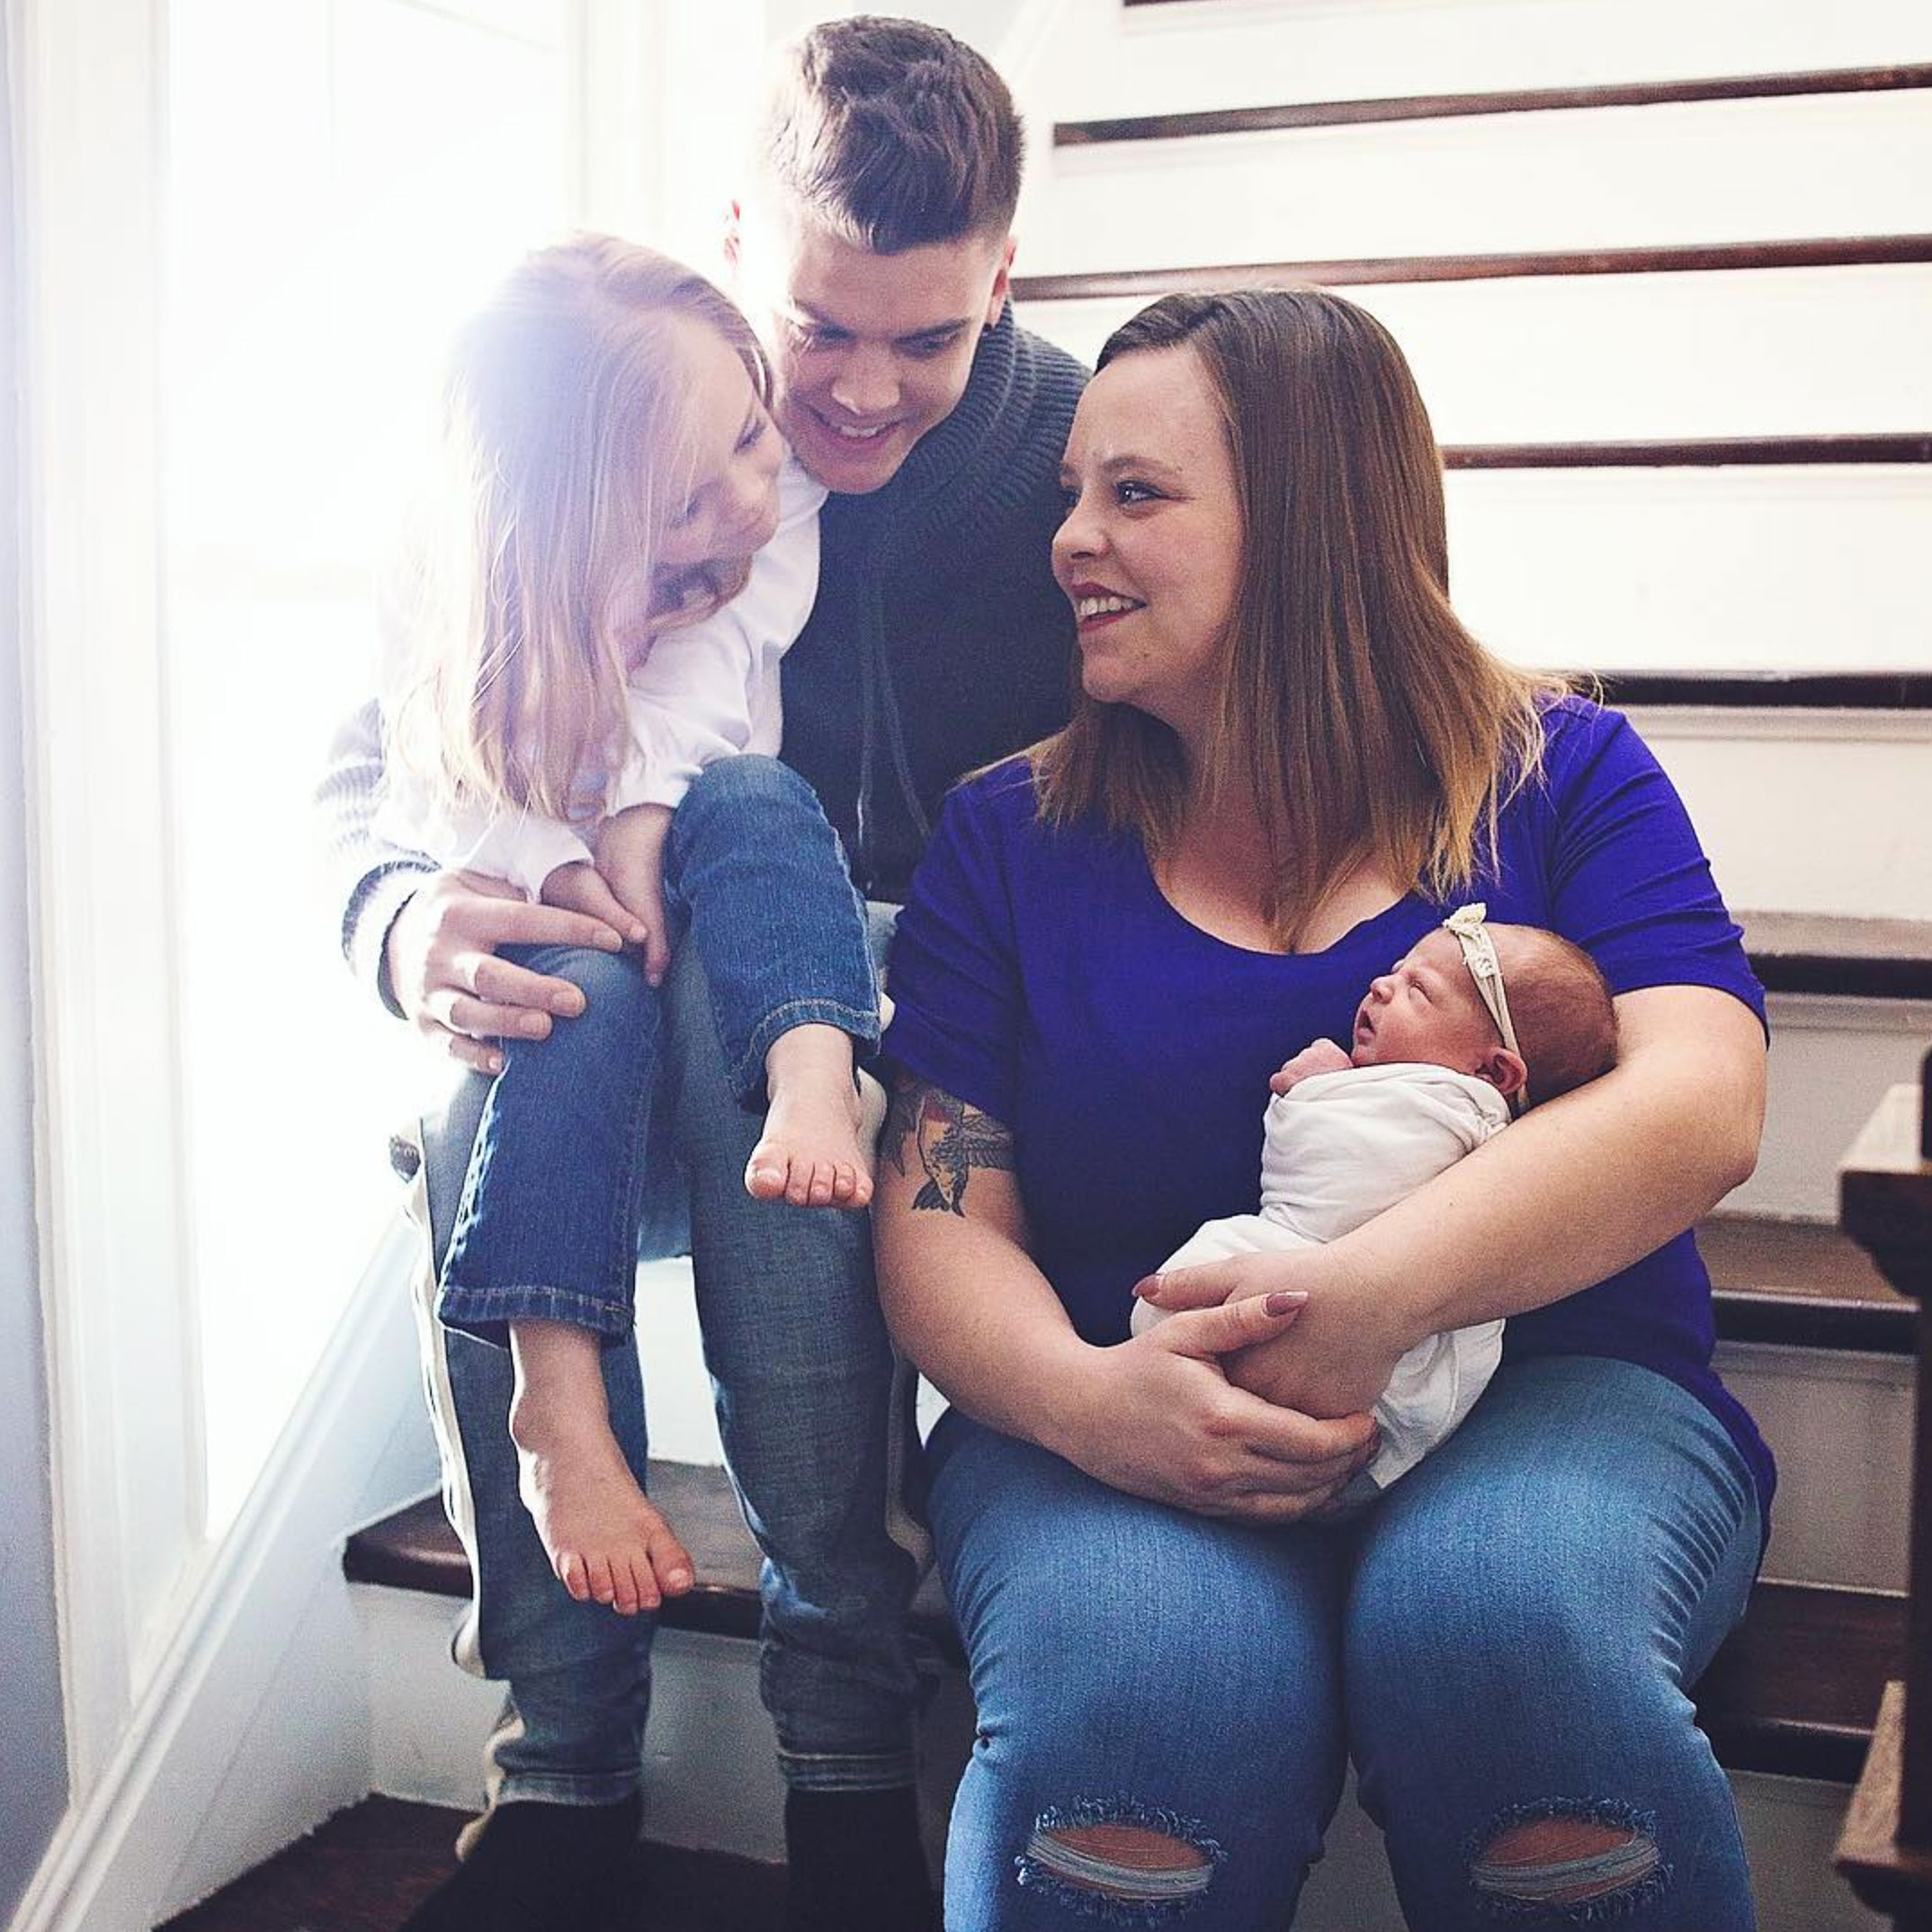 Catelynn-Lowell-and-Tyler-Baltierra-Are-Already-Planning-Baby-No.-4